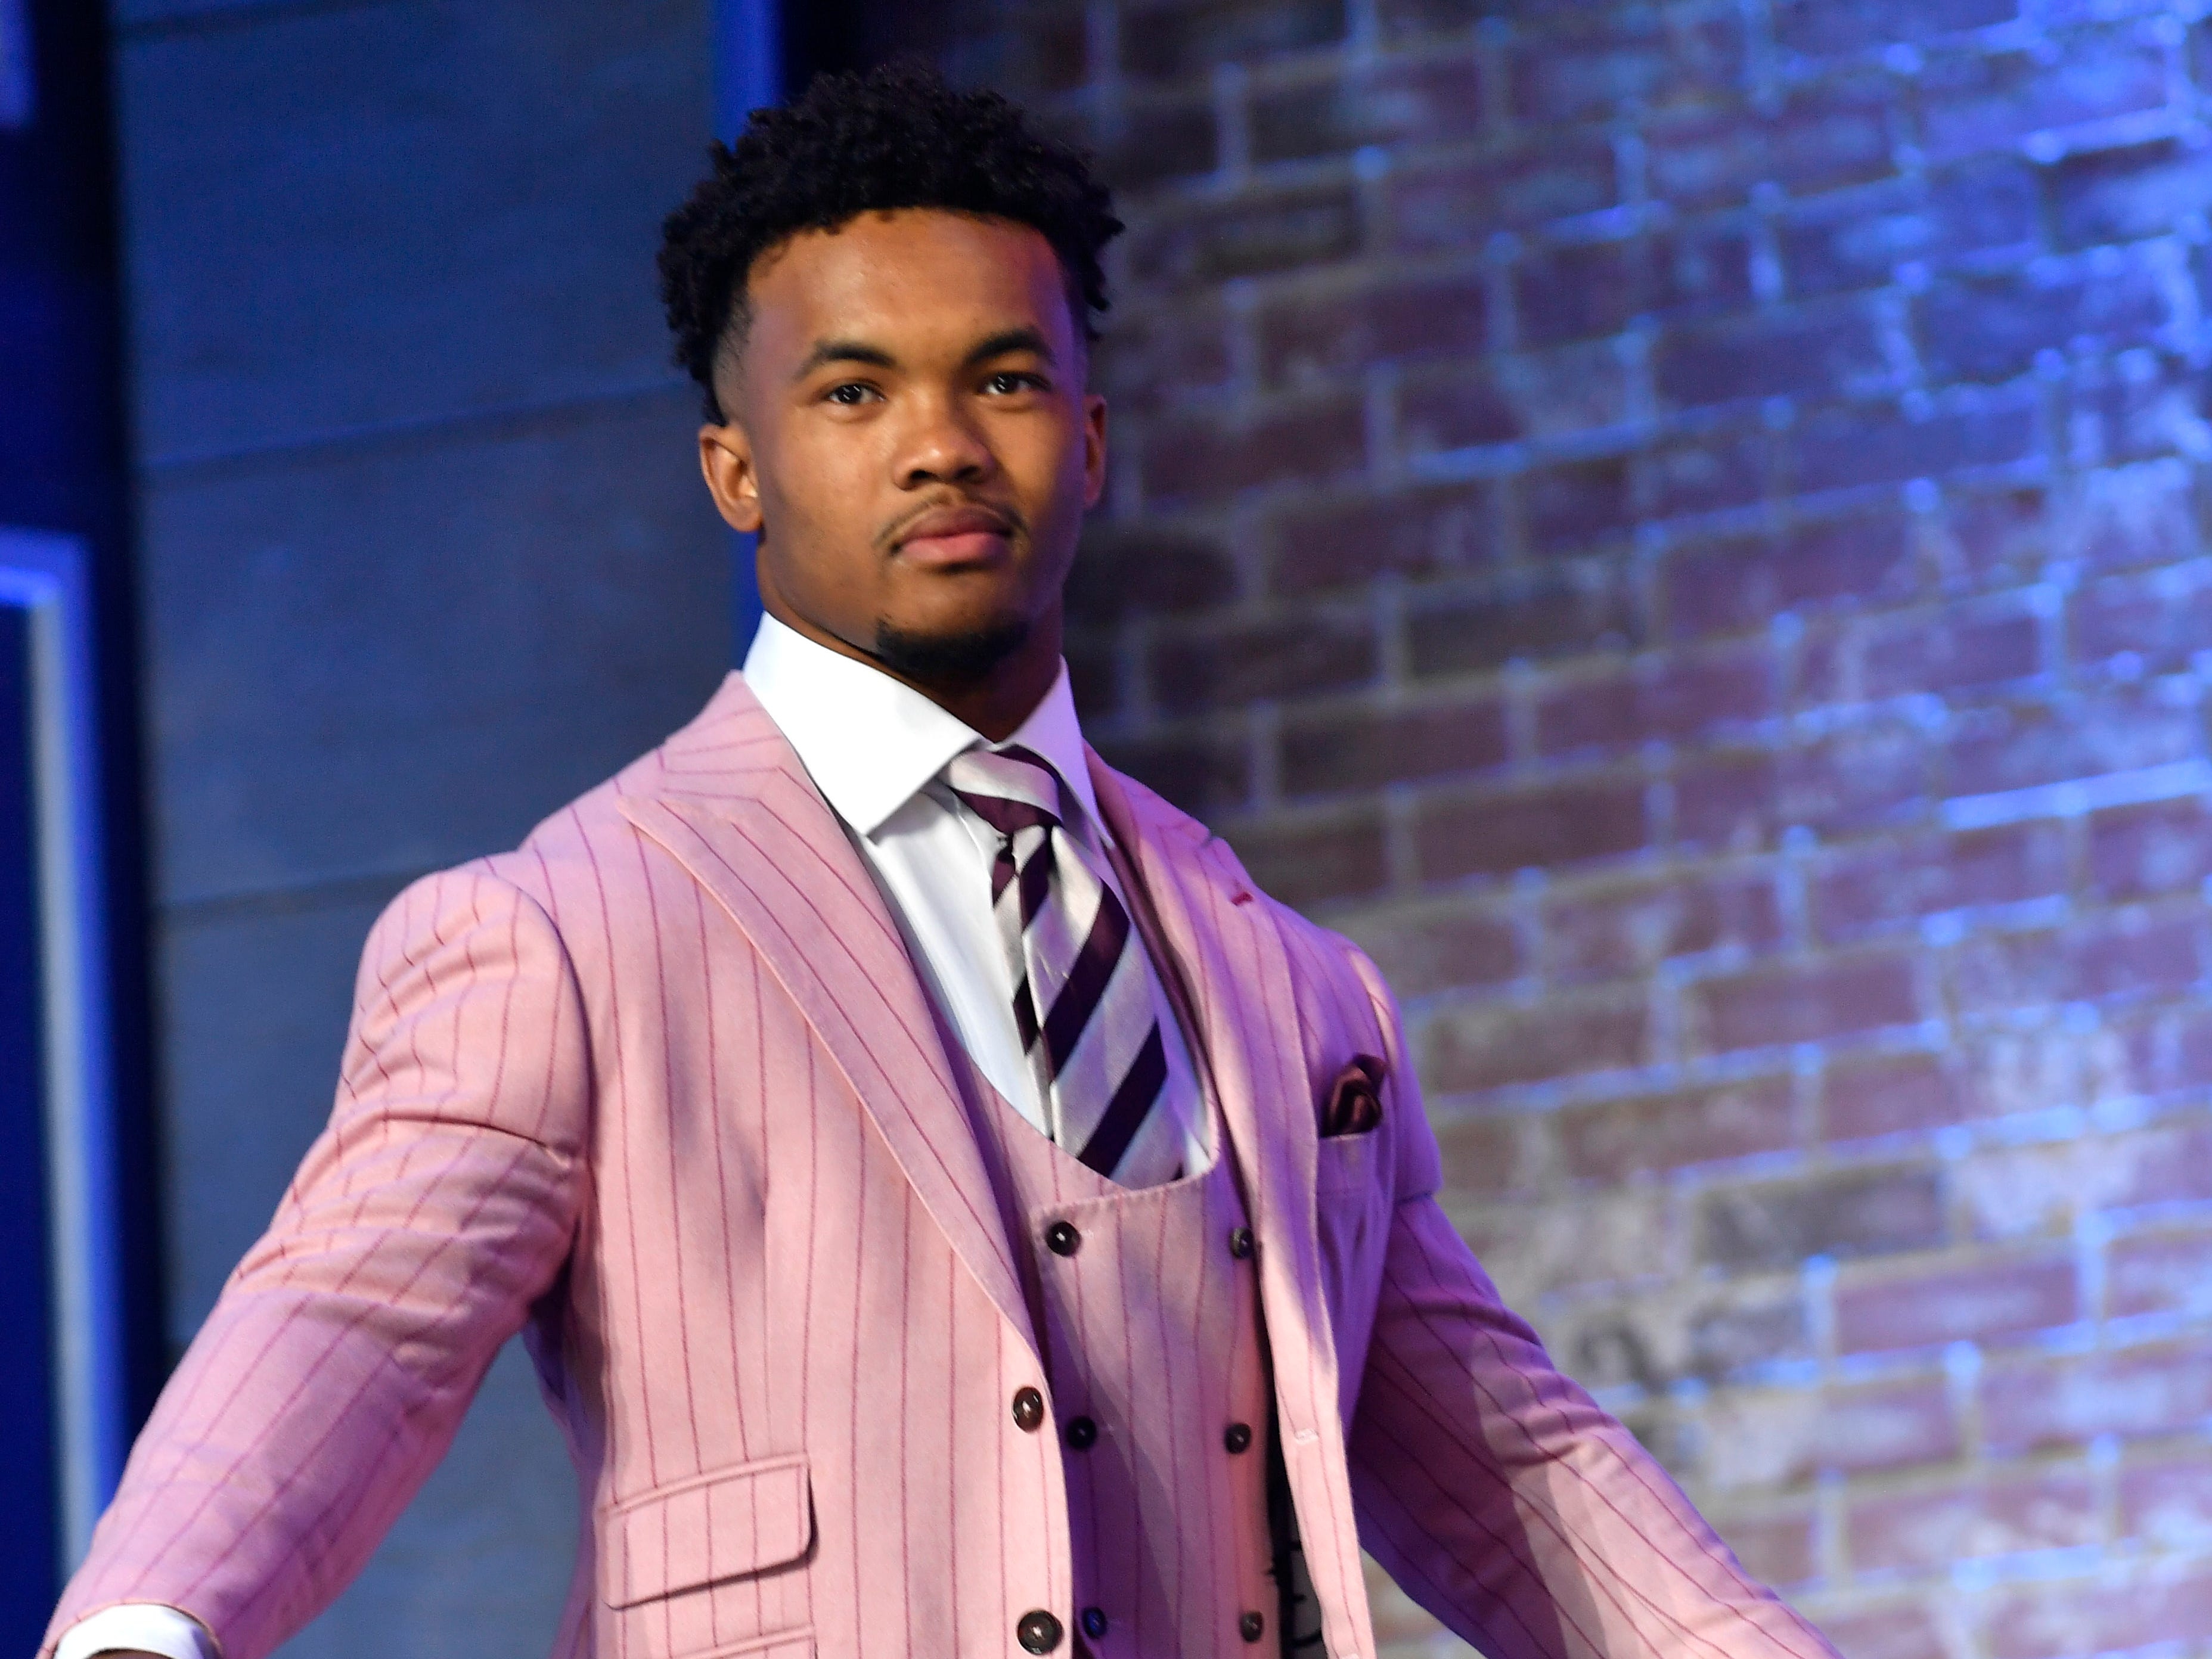 Kyler Murray of Oklahoma walks onto the stage for the first round of the NFL Draft Thursday, April 25, 2019, in Nashville, Tenn.